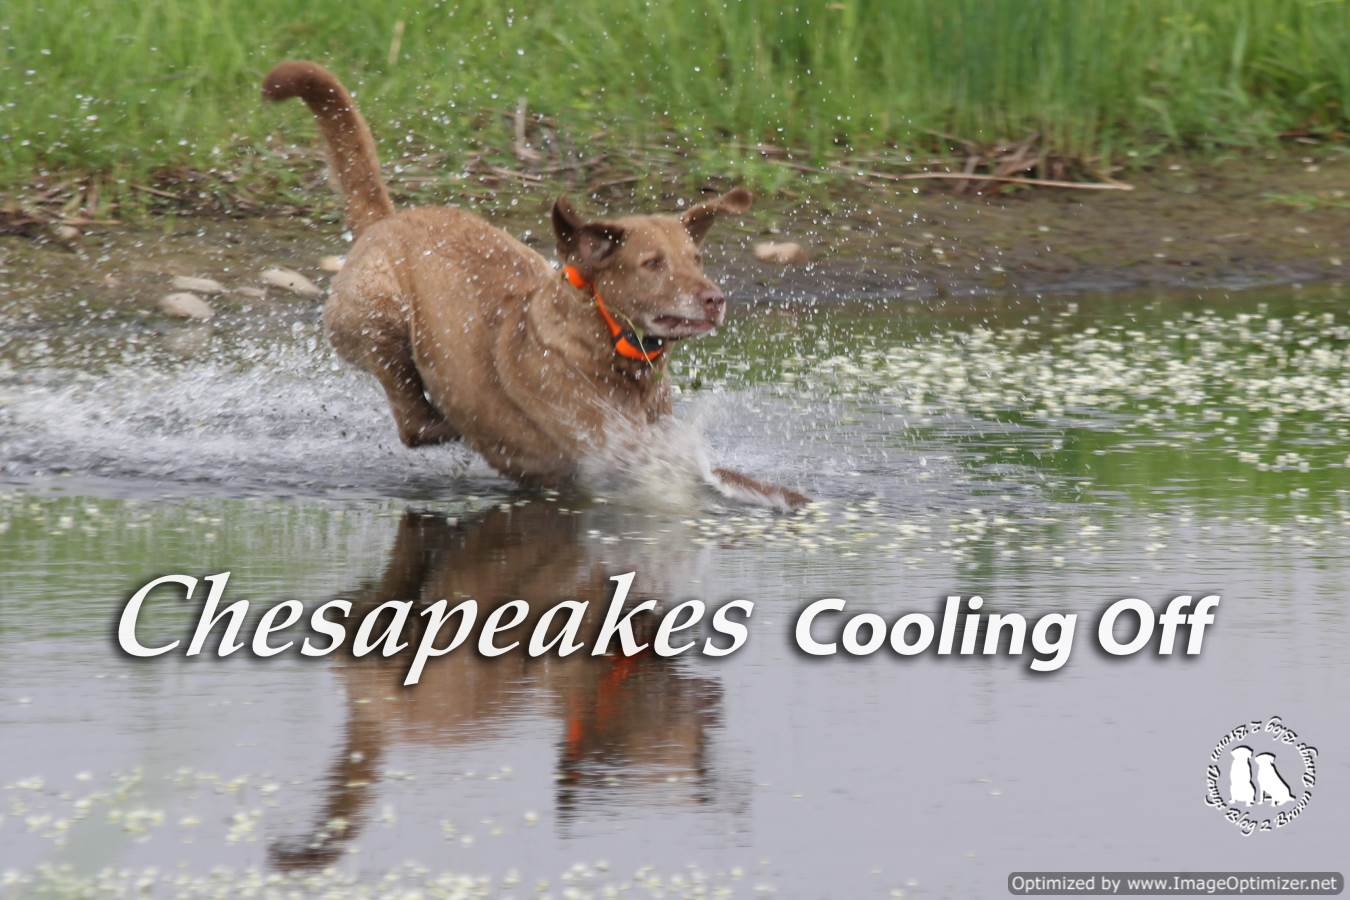 Chesapeakes Cooling Off